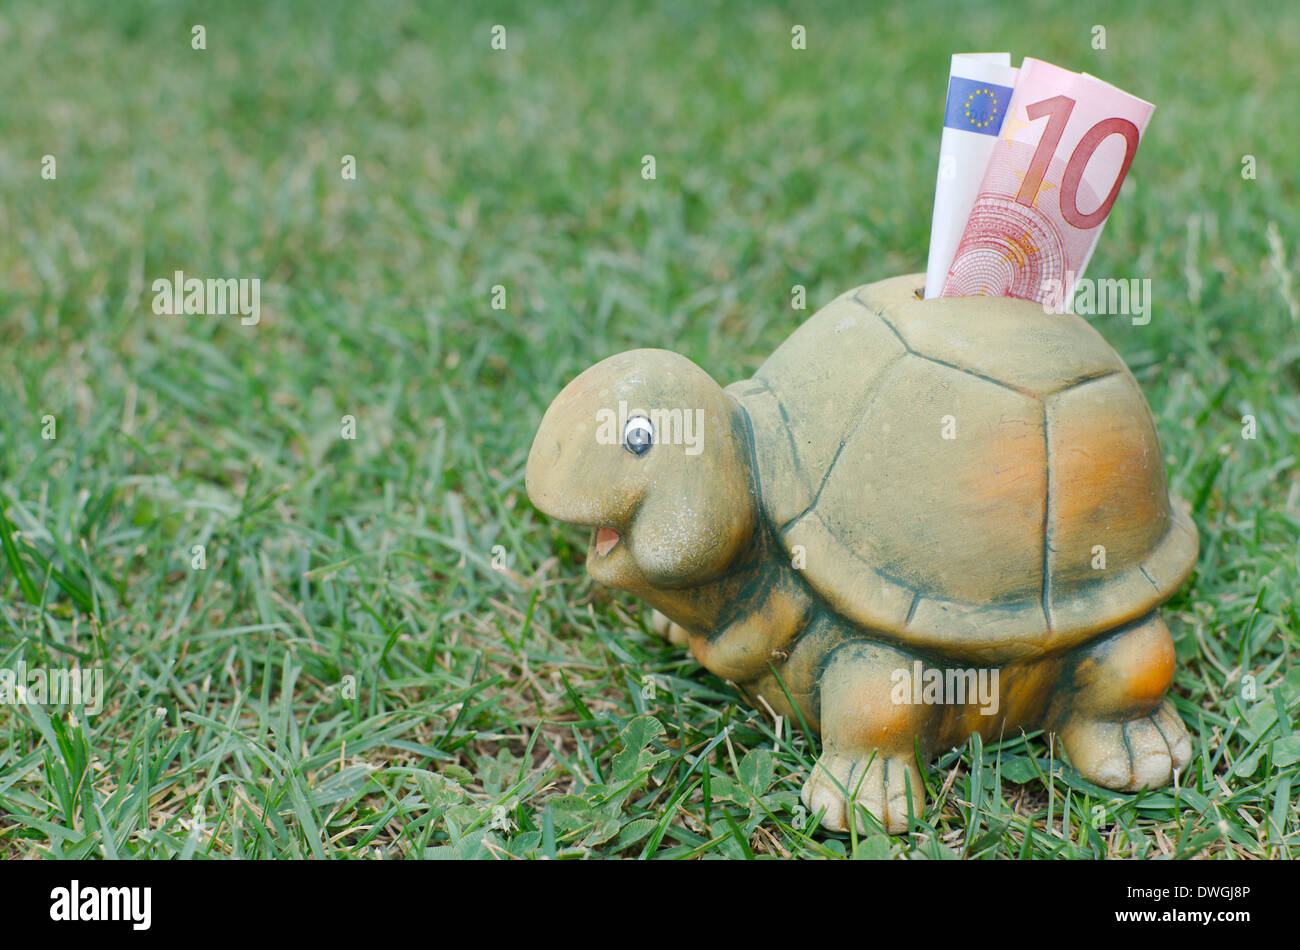 Happy Turtle Piggy Bank with Ten Euro Banknote in the Green Grass - Stock Image